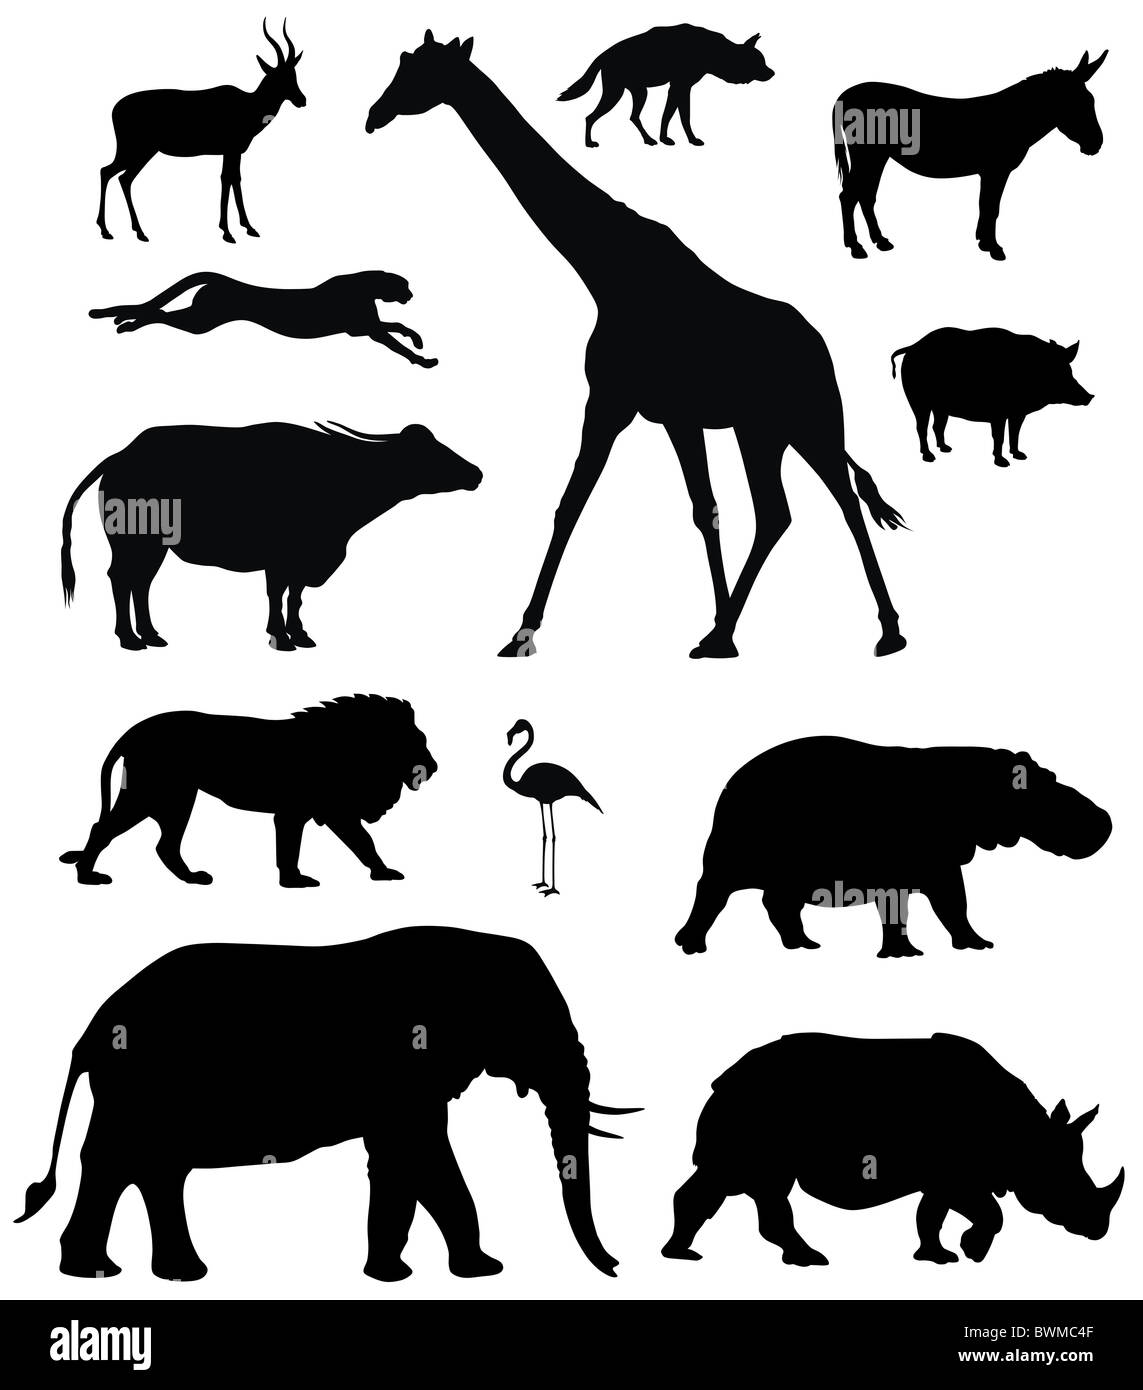 Illustration de silhouettes d'animaux africains Photo Stock